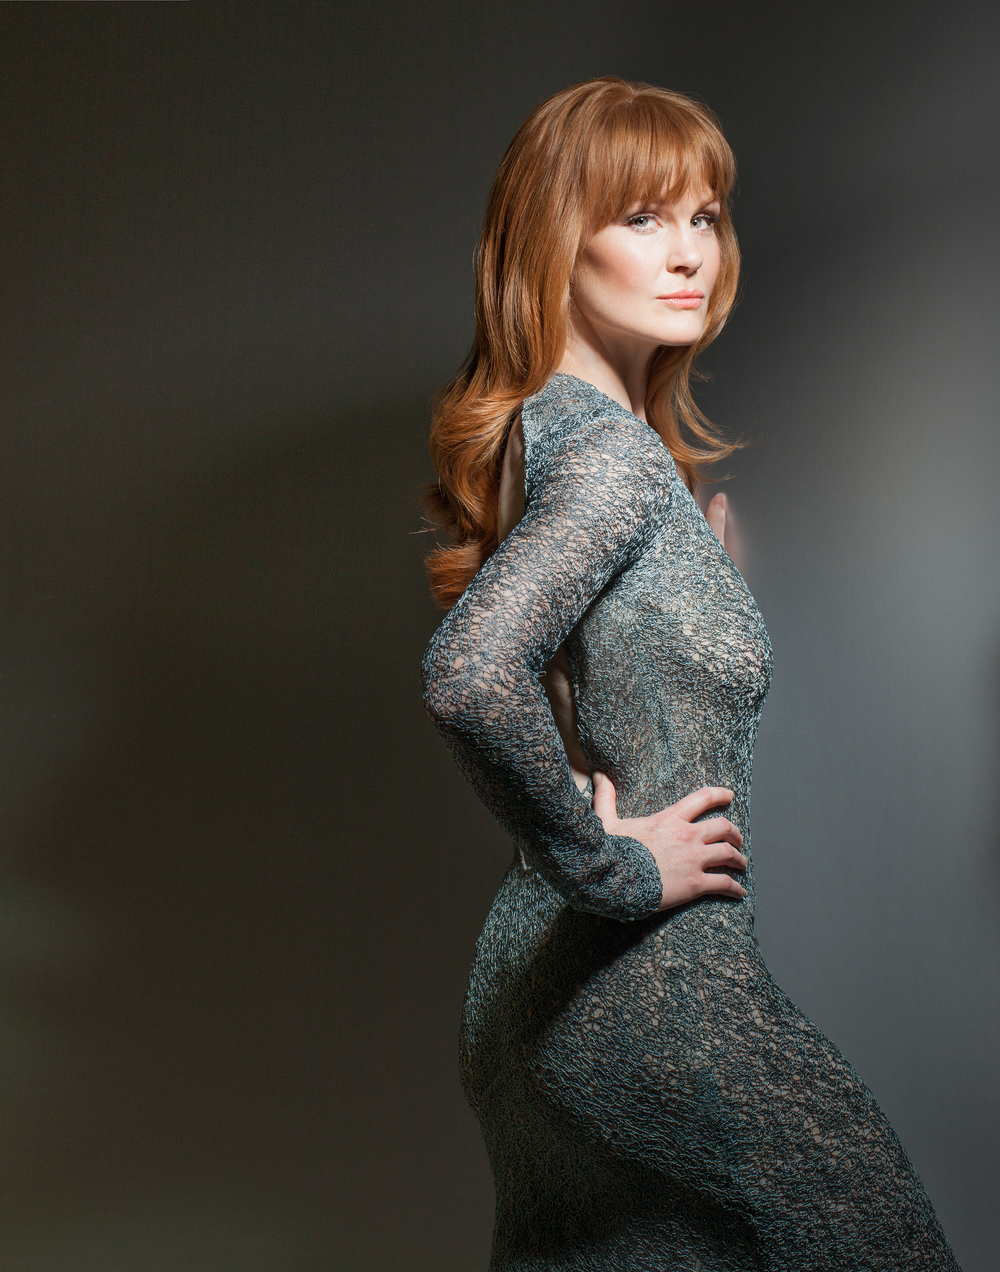 kate baldwin 2_141.jpg